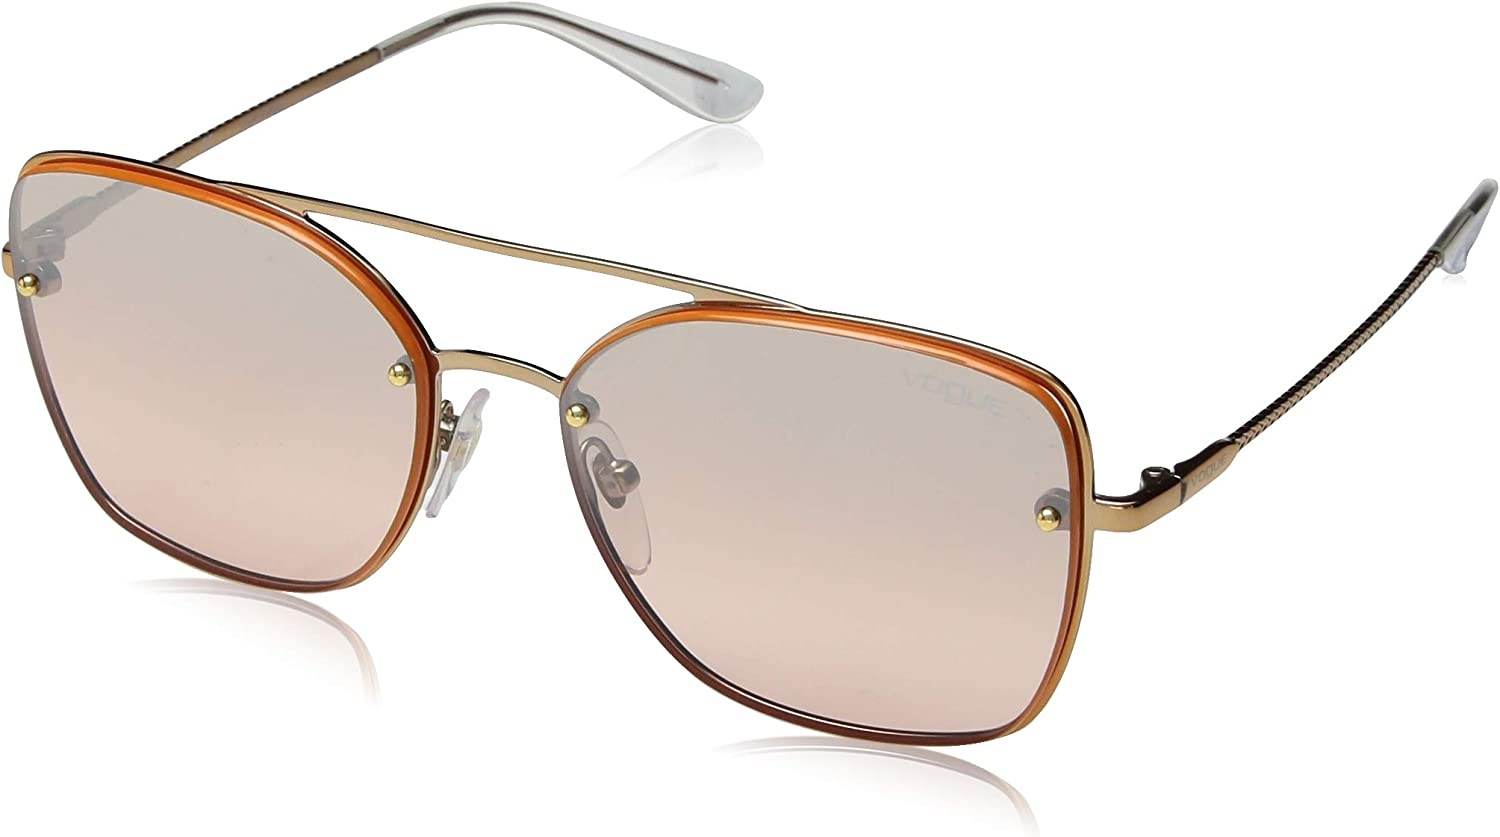 VOGUE Women's 0vo4112s Square Sunglasses pink gold 56.0 mm